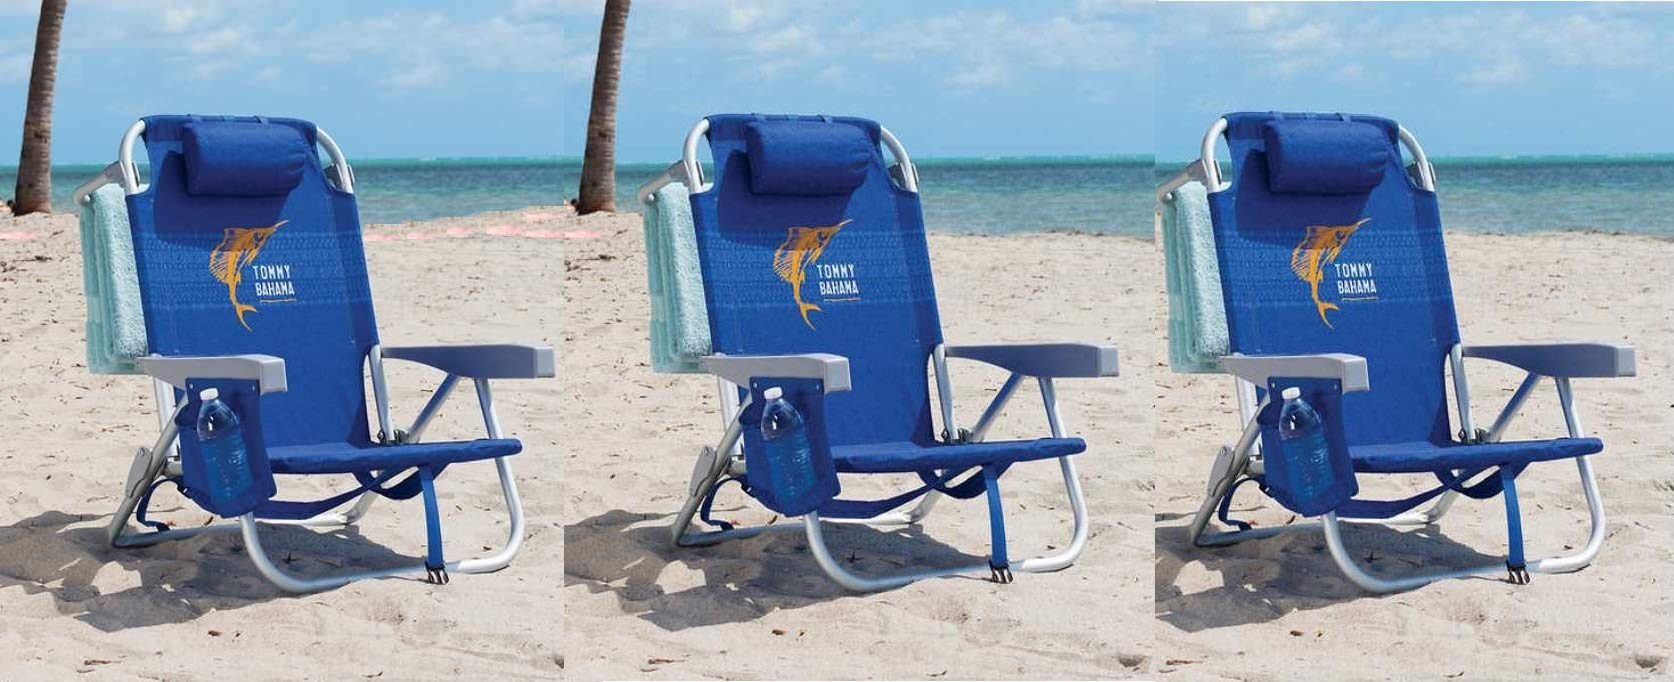 Tommy Bahama 3 Pack Backpack Beach Chair Blue with Sailfish Logo